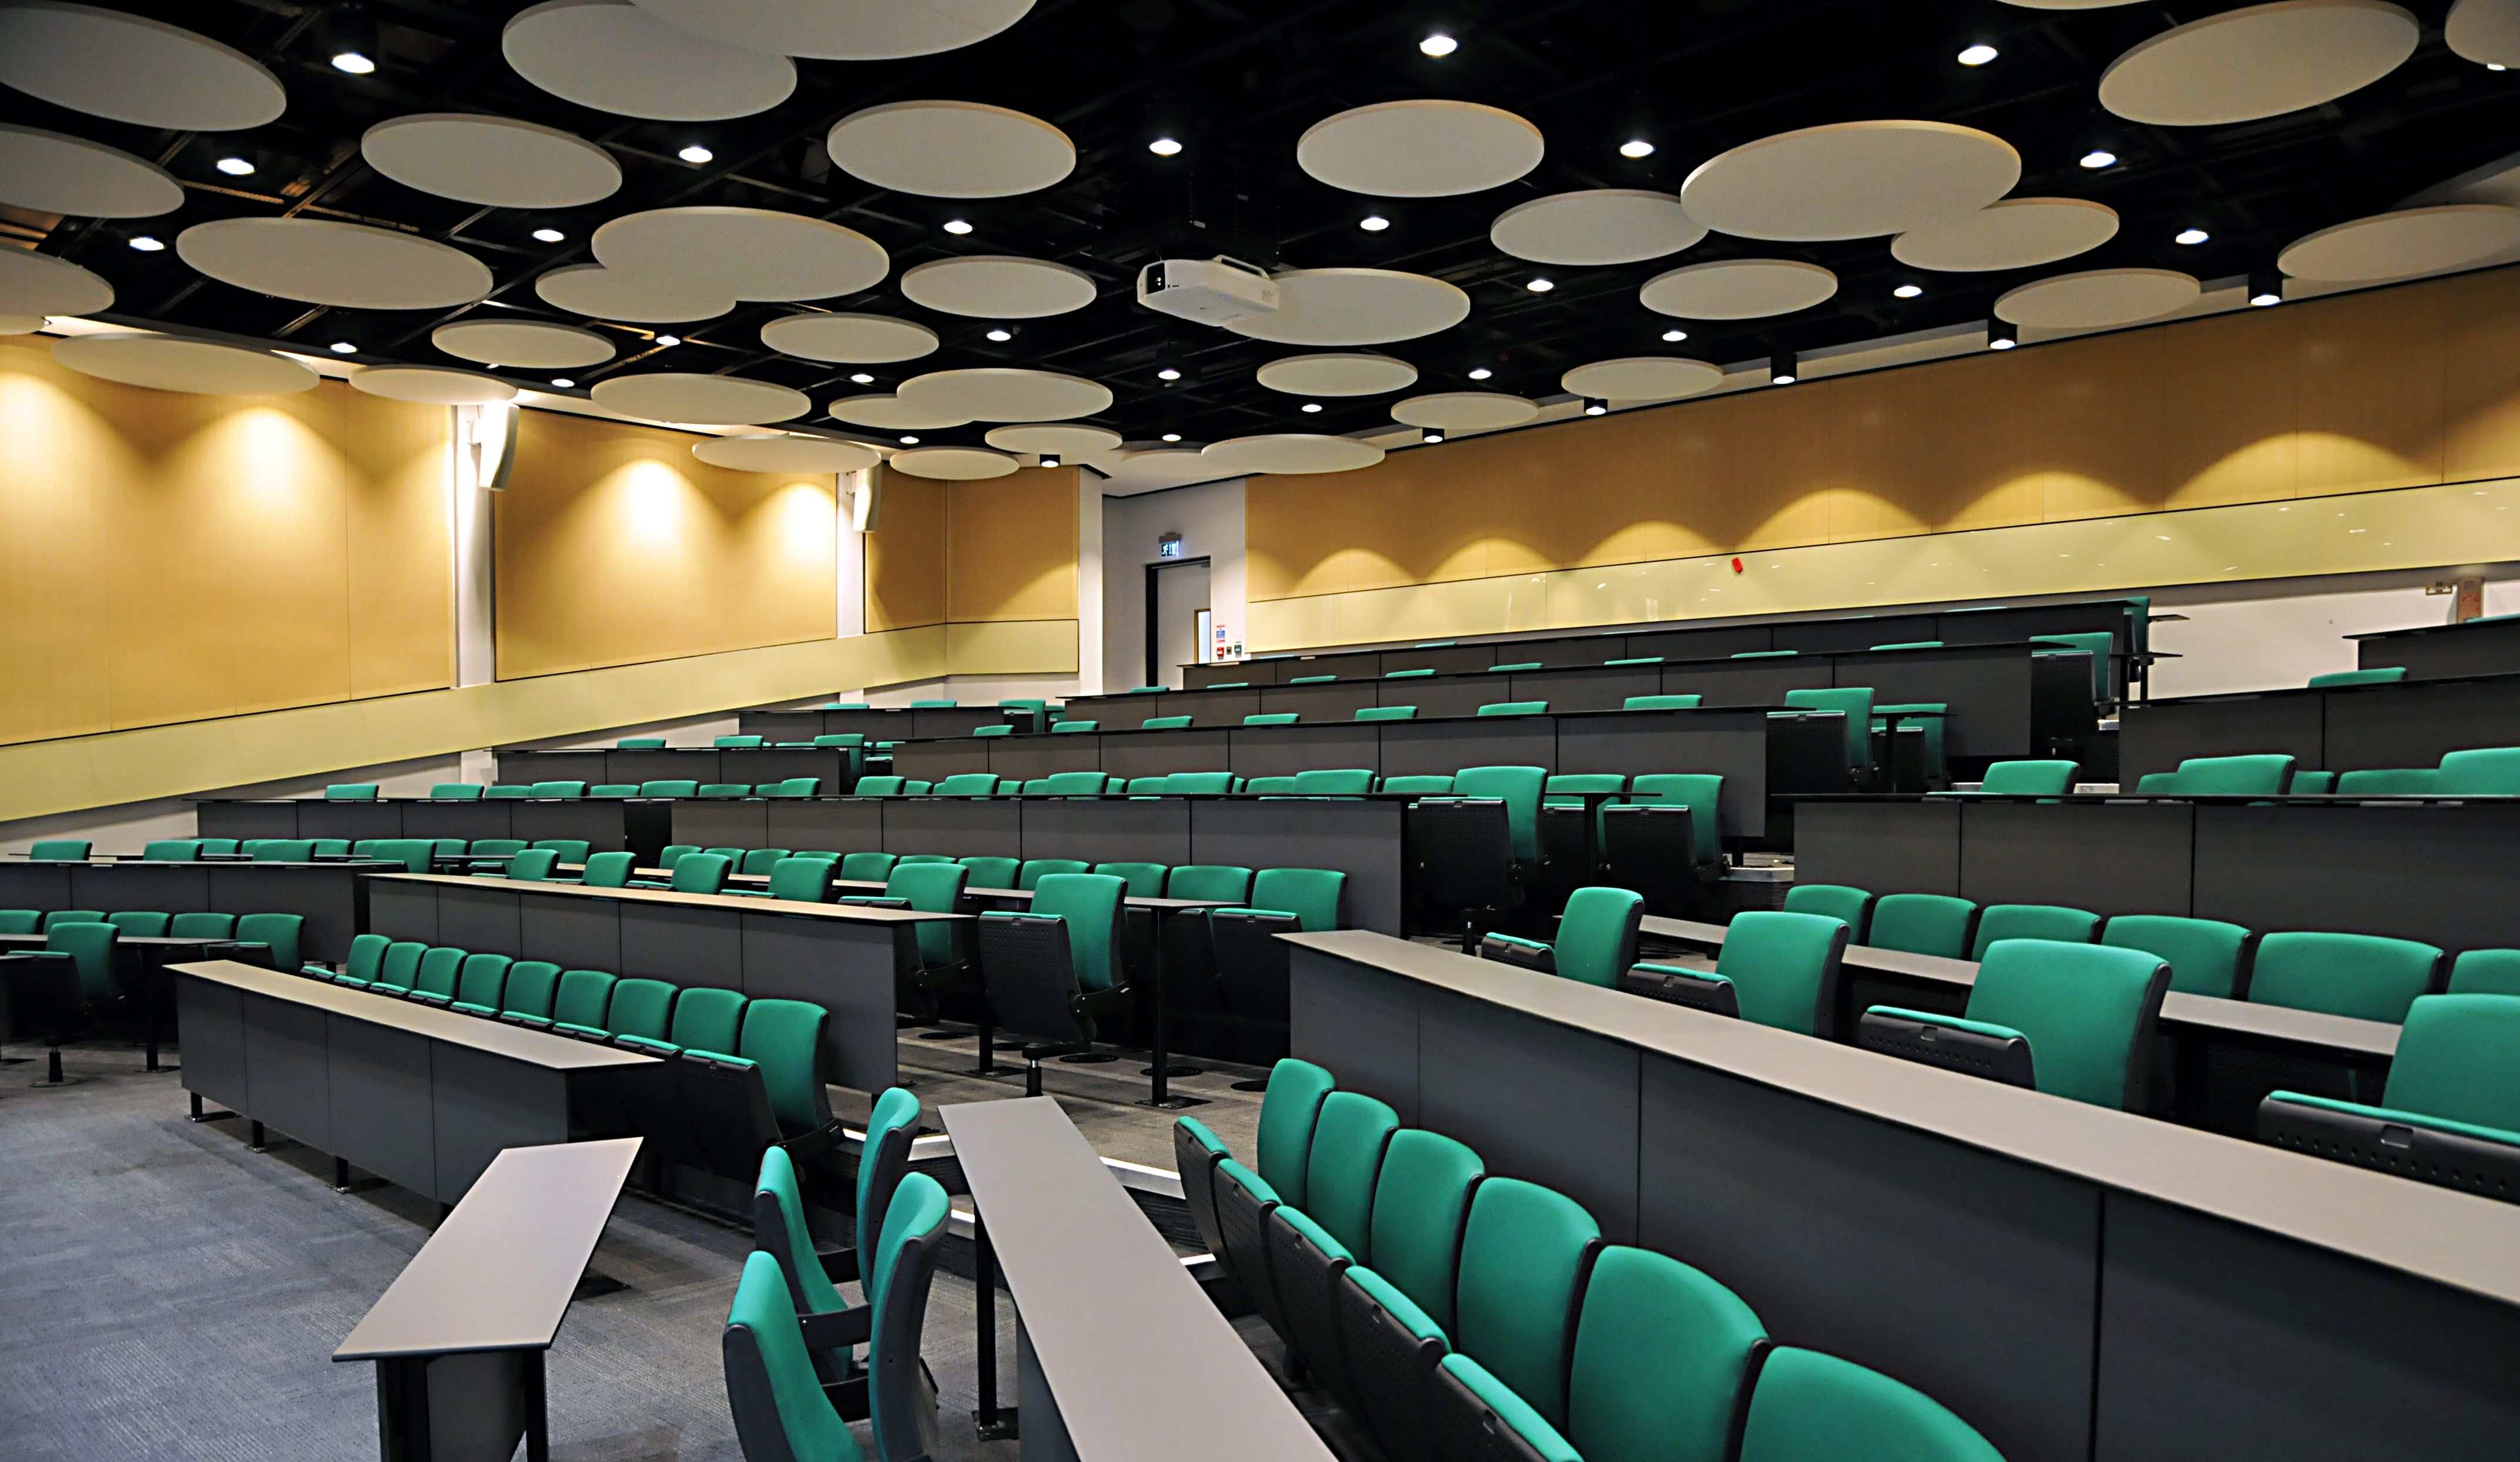 Kingston University Turn And Learn Collaborative Learning Lecture Theatre